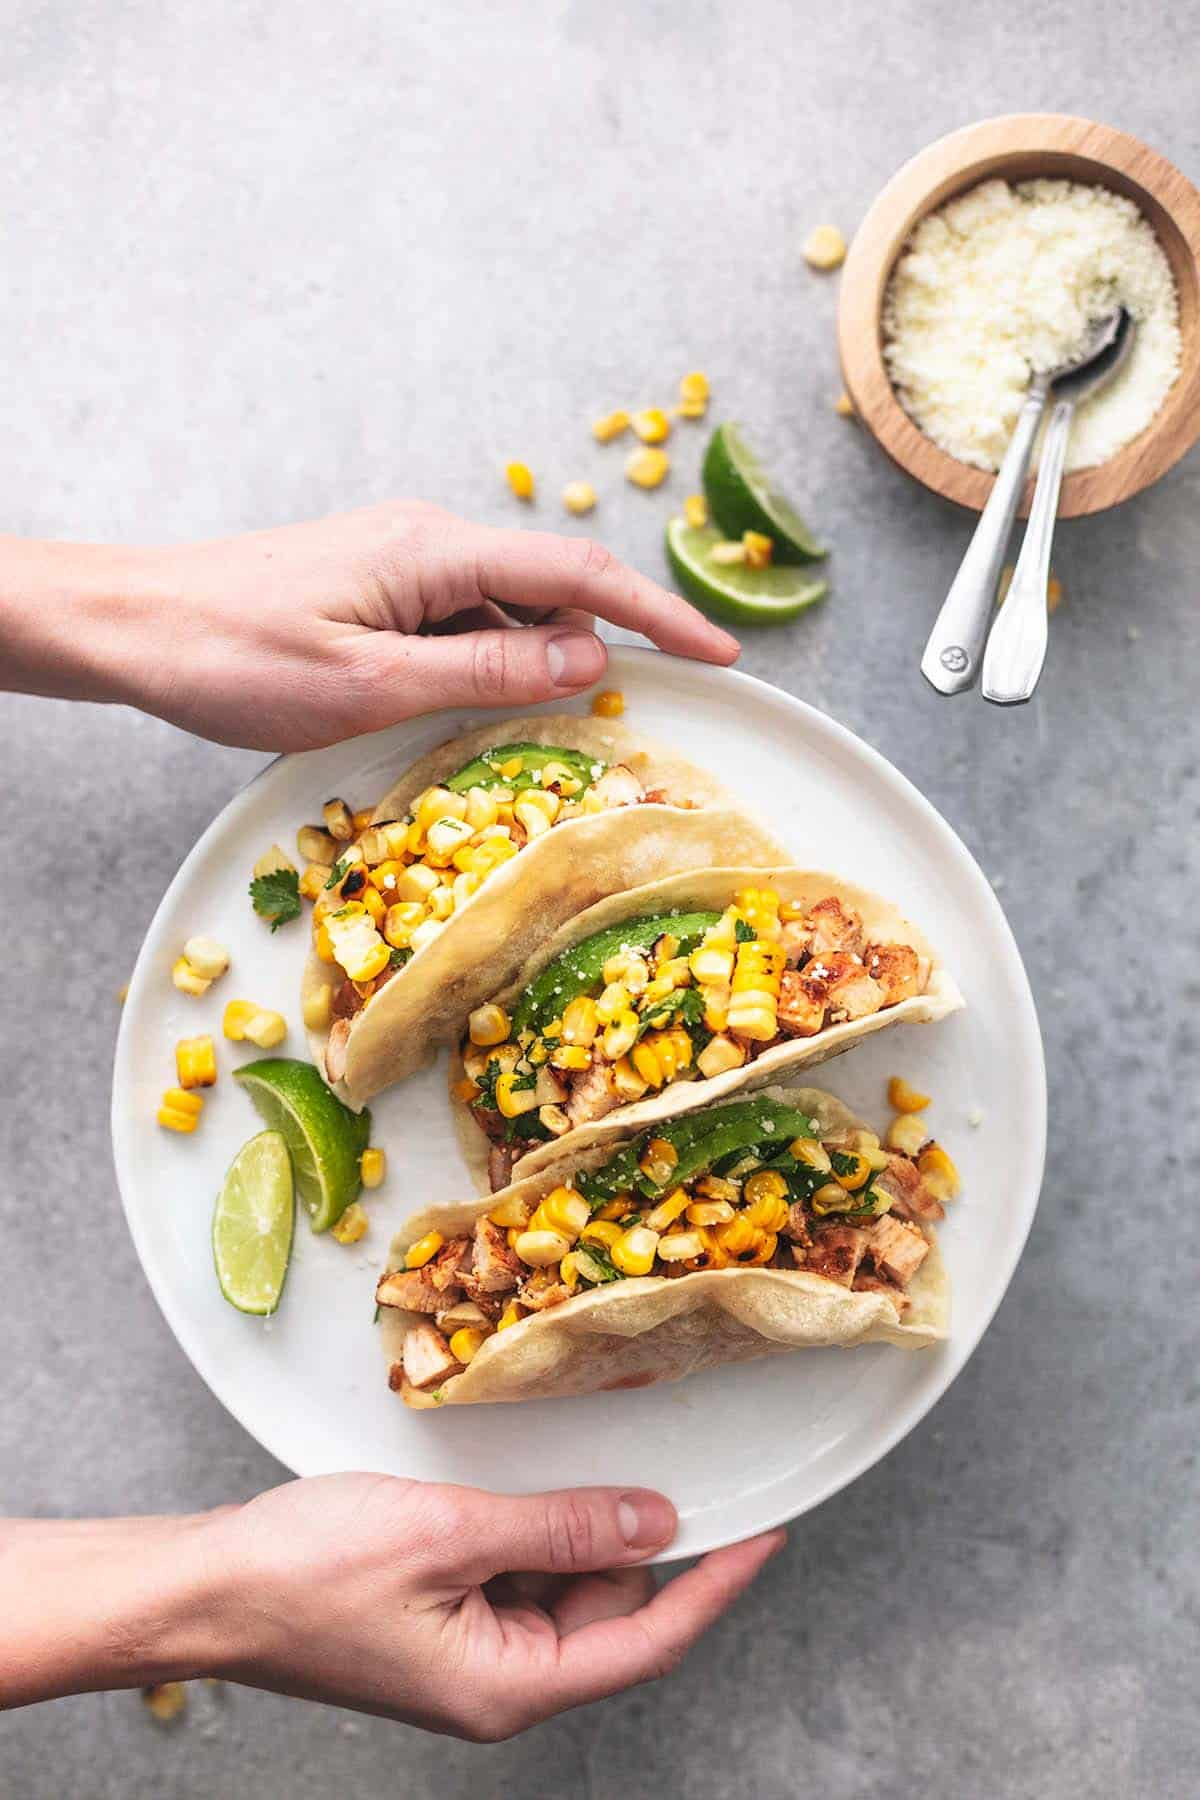 top view of hands holding a white plate with chicken tacos on it.